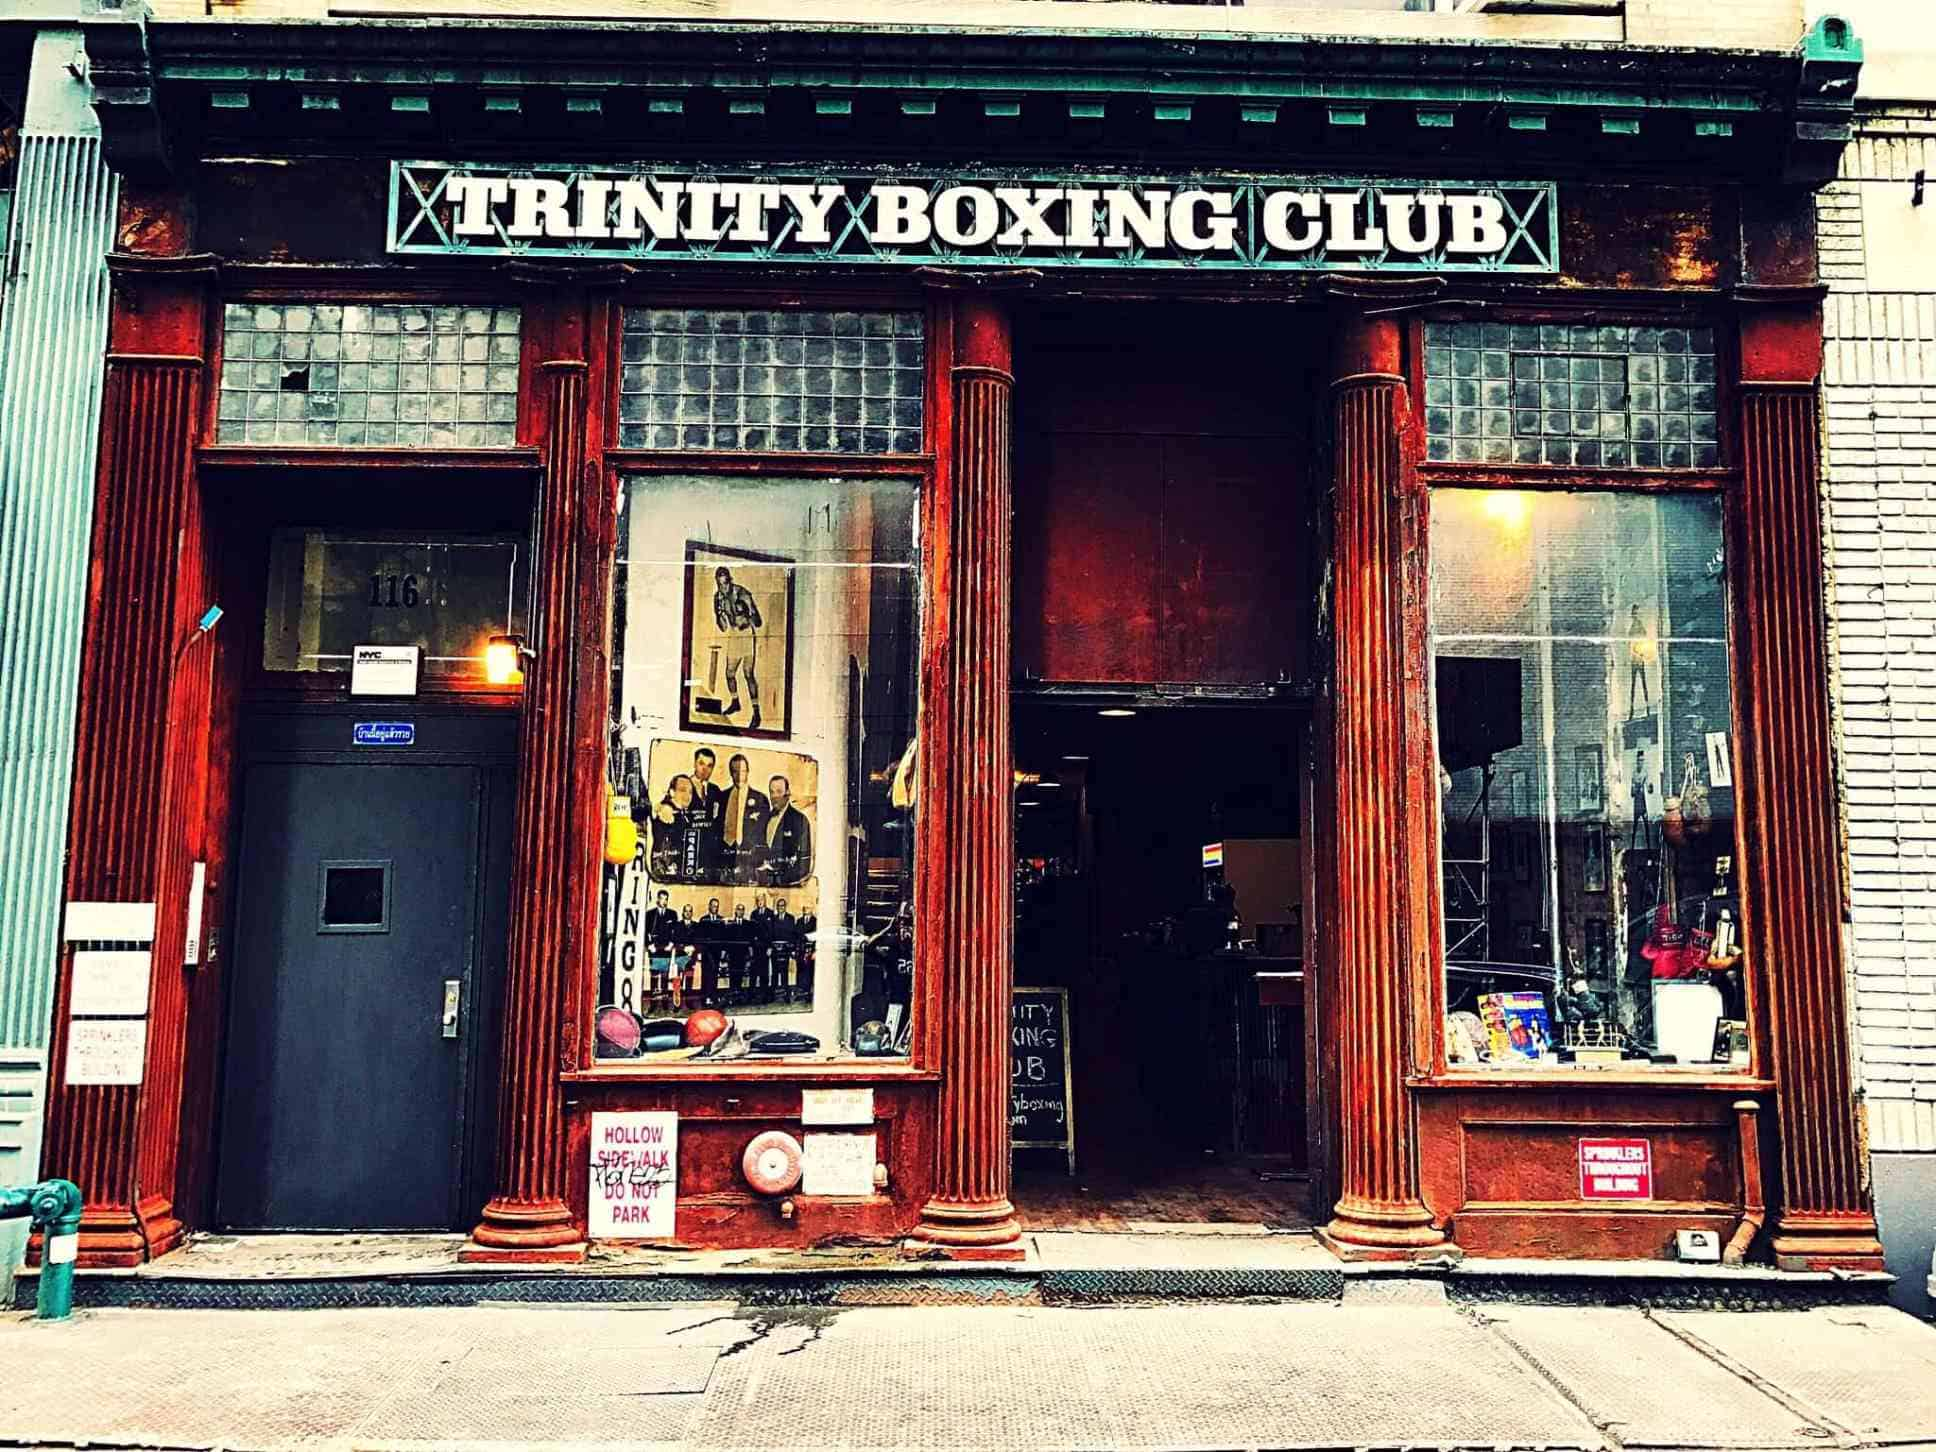 TRINITY-BOXING-CLUB